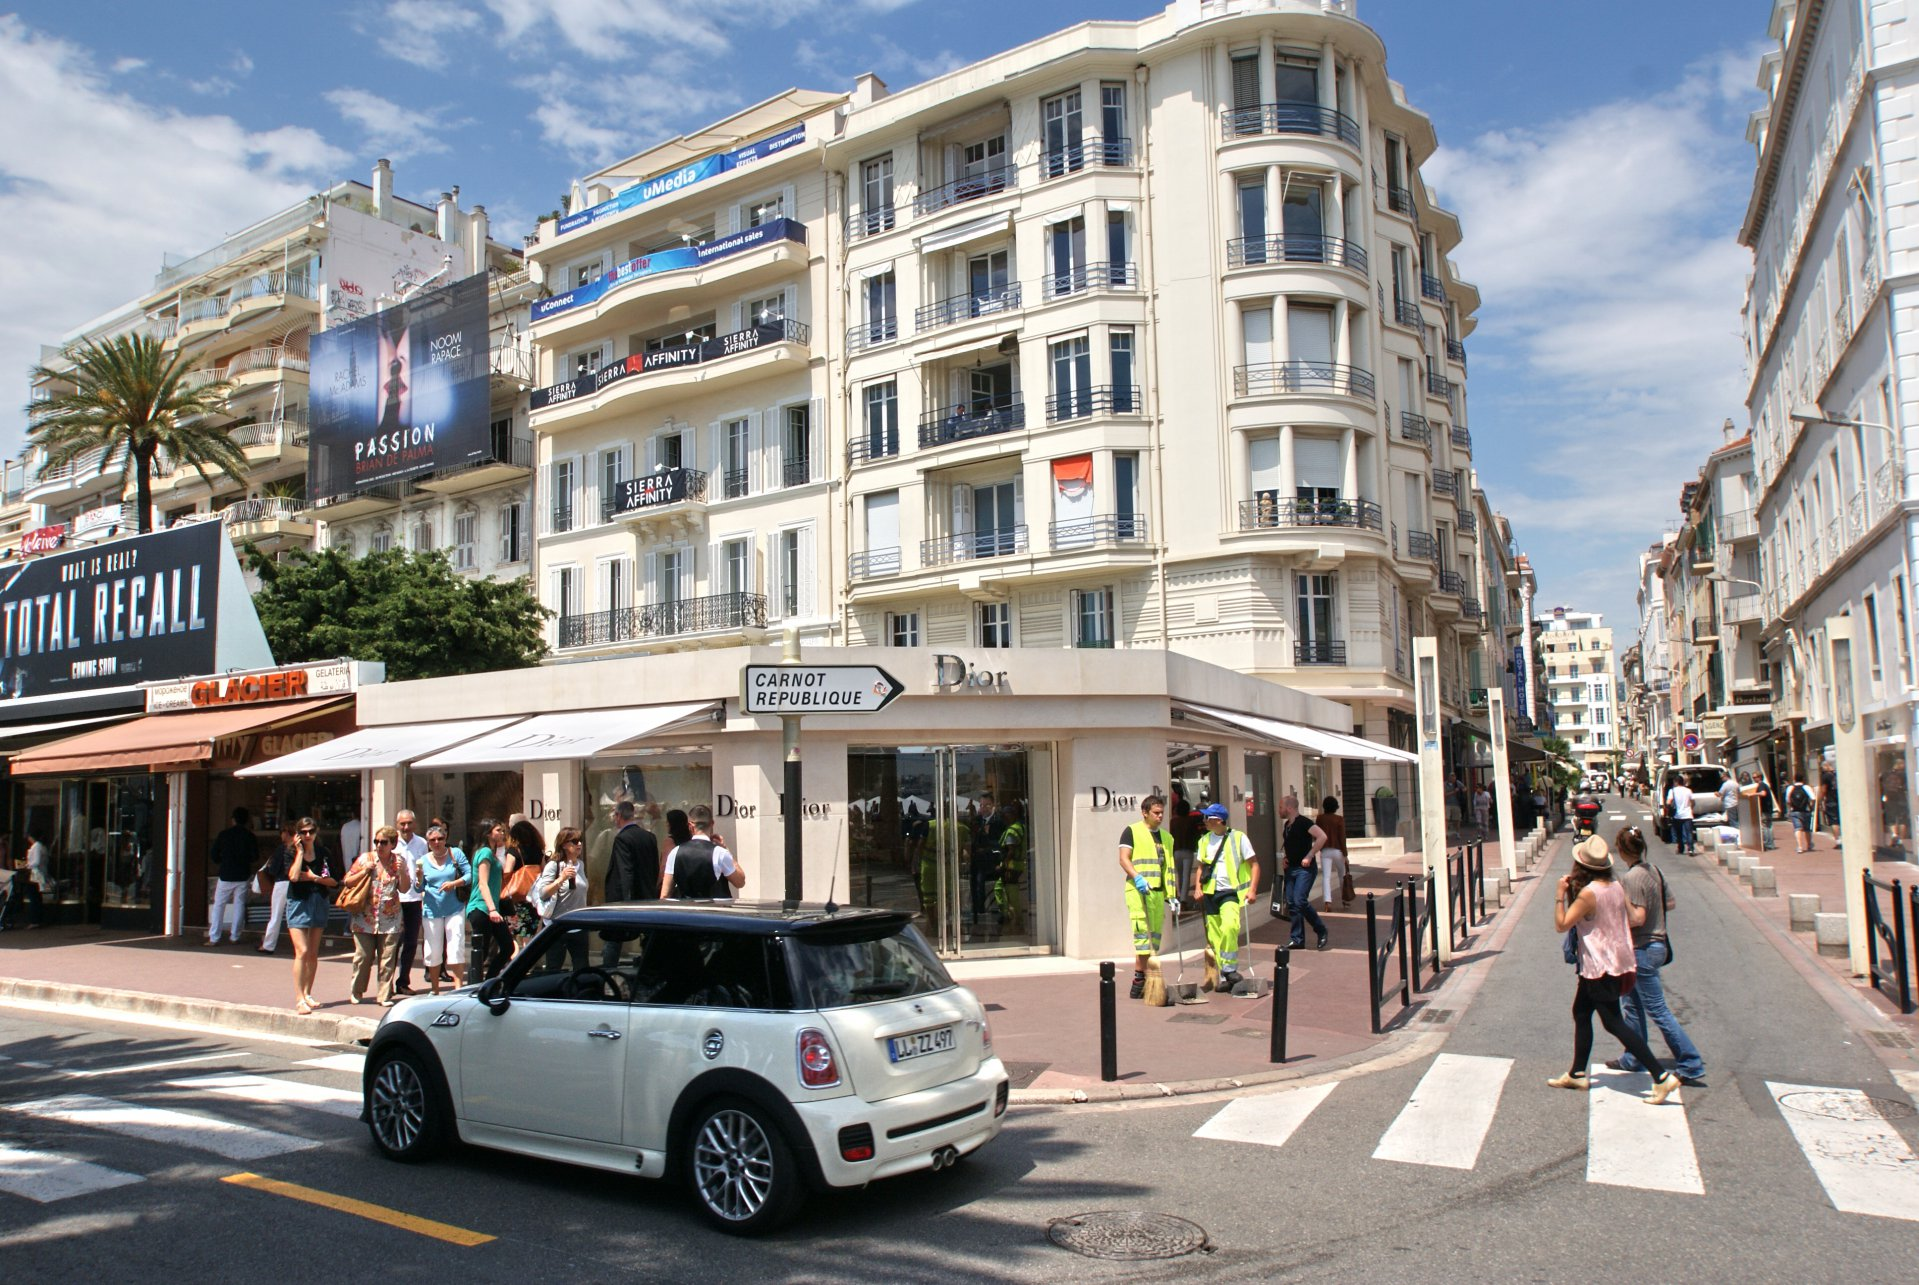 CANNES CENTRE VILLE - MURS OCCUPES